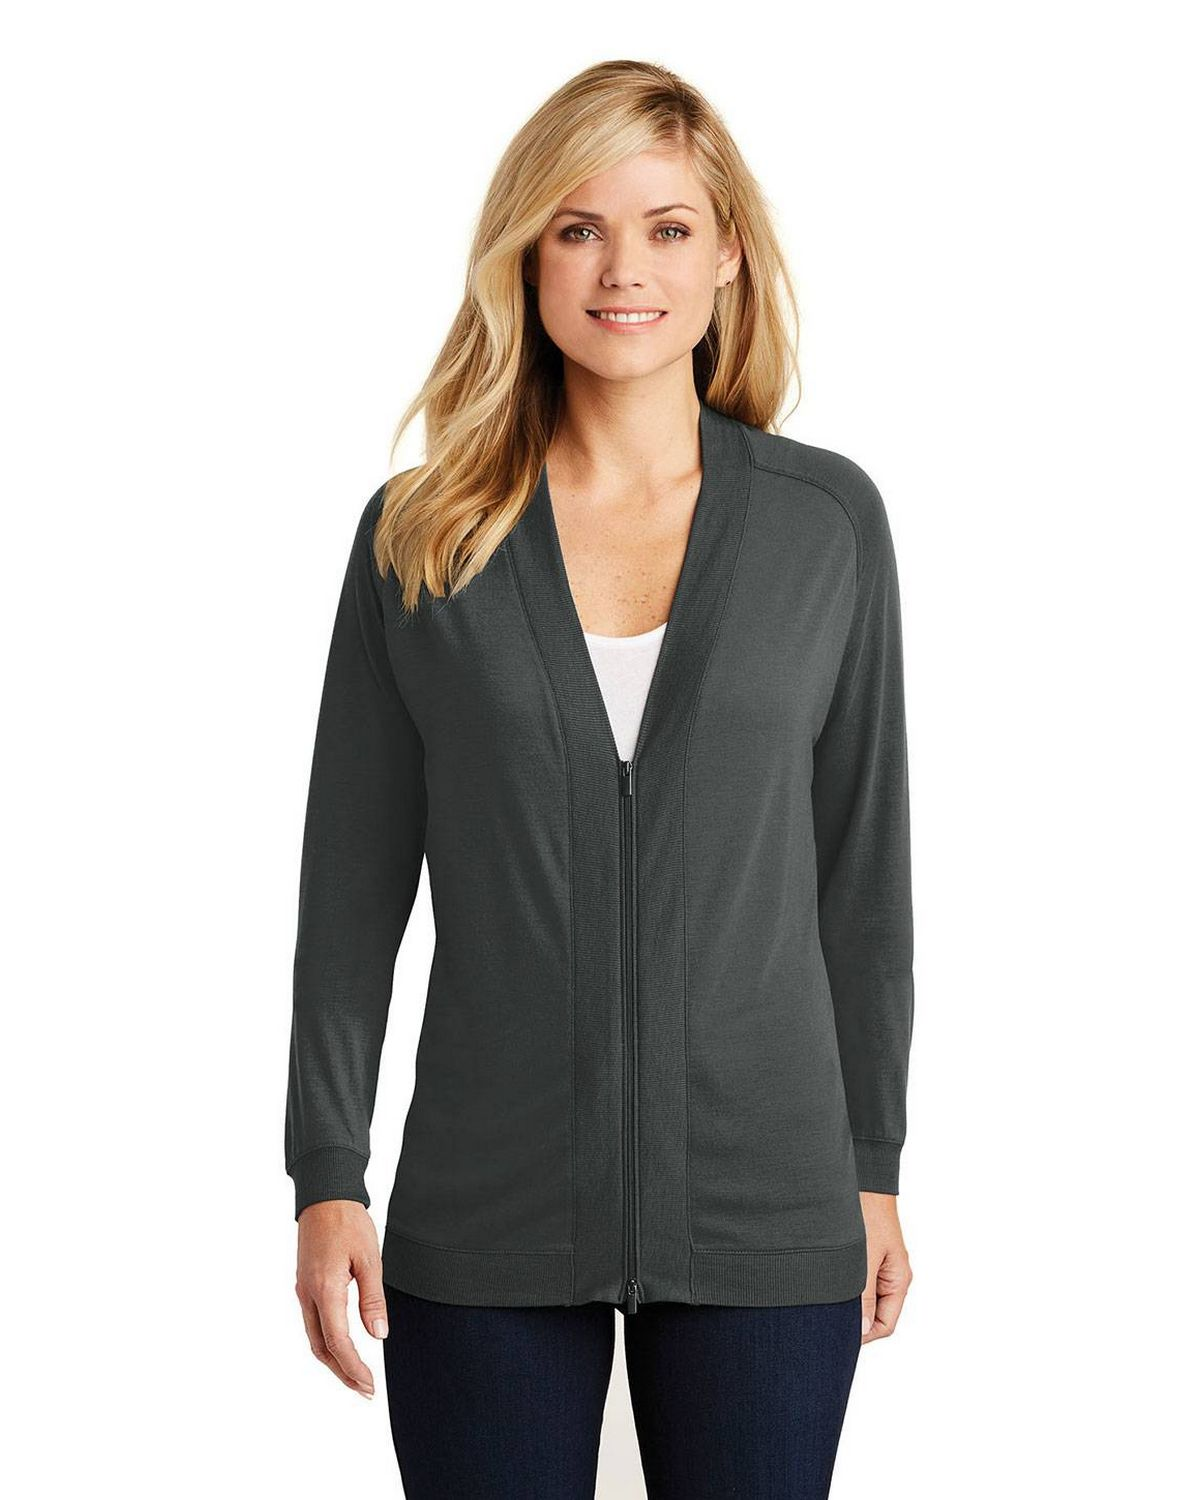 Port Authority LK5431 Ladies Concept Bomber Cardigan